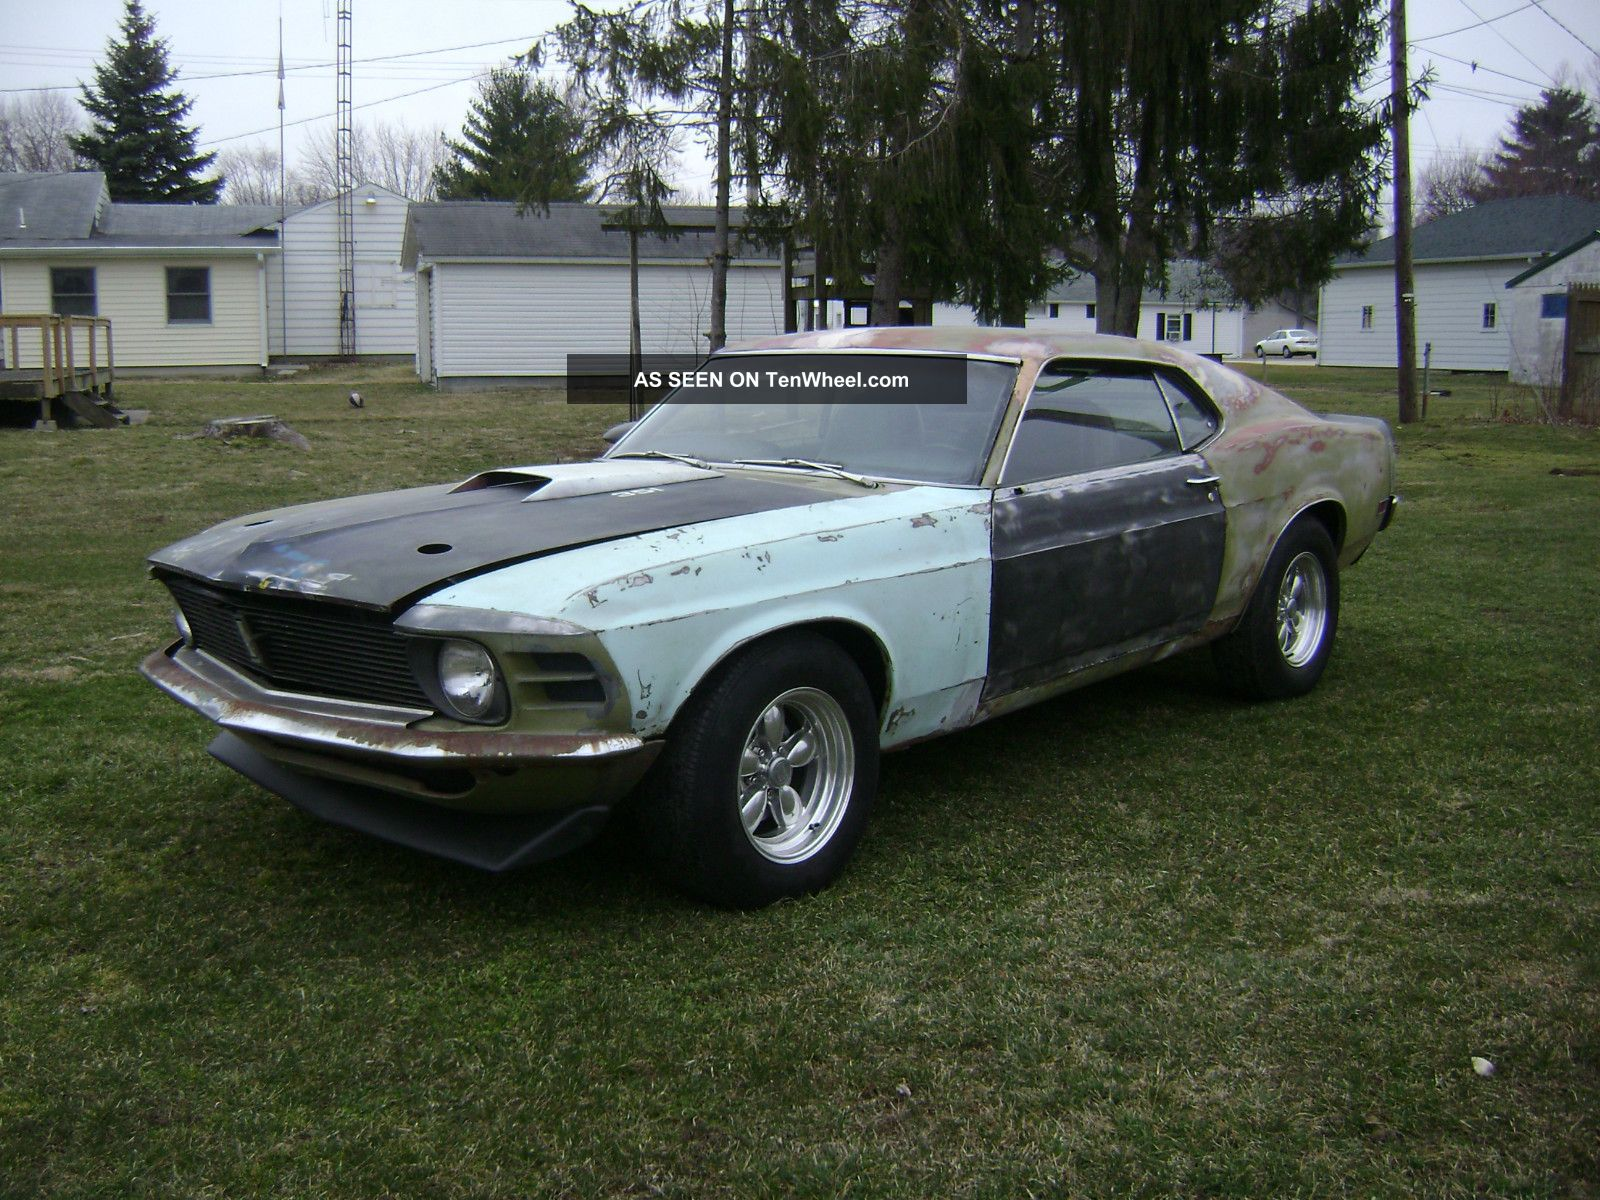 1970 Ford Mustang Fastback Numbers Matching Running With Marti Mach 1 Report